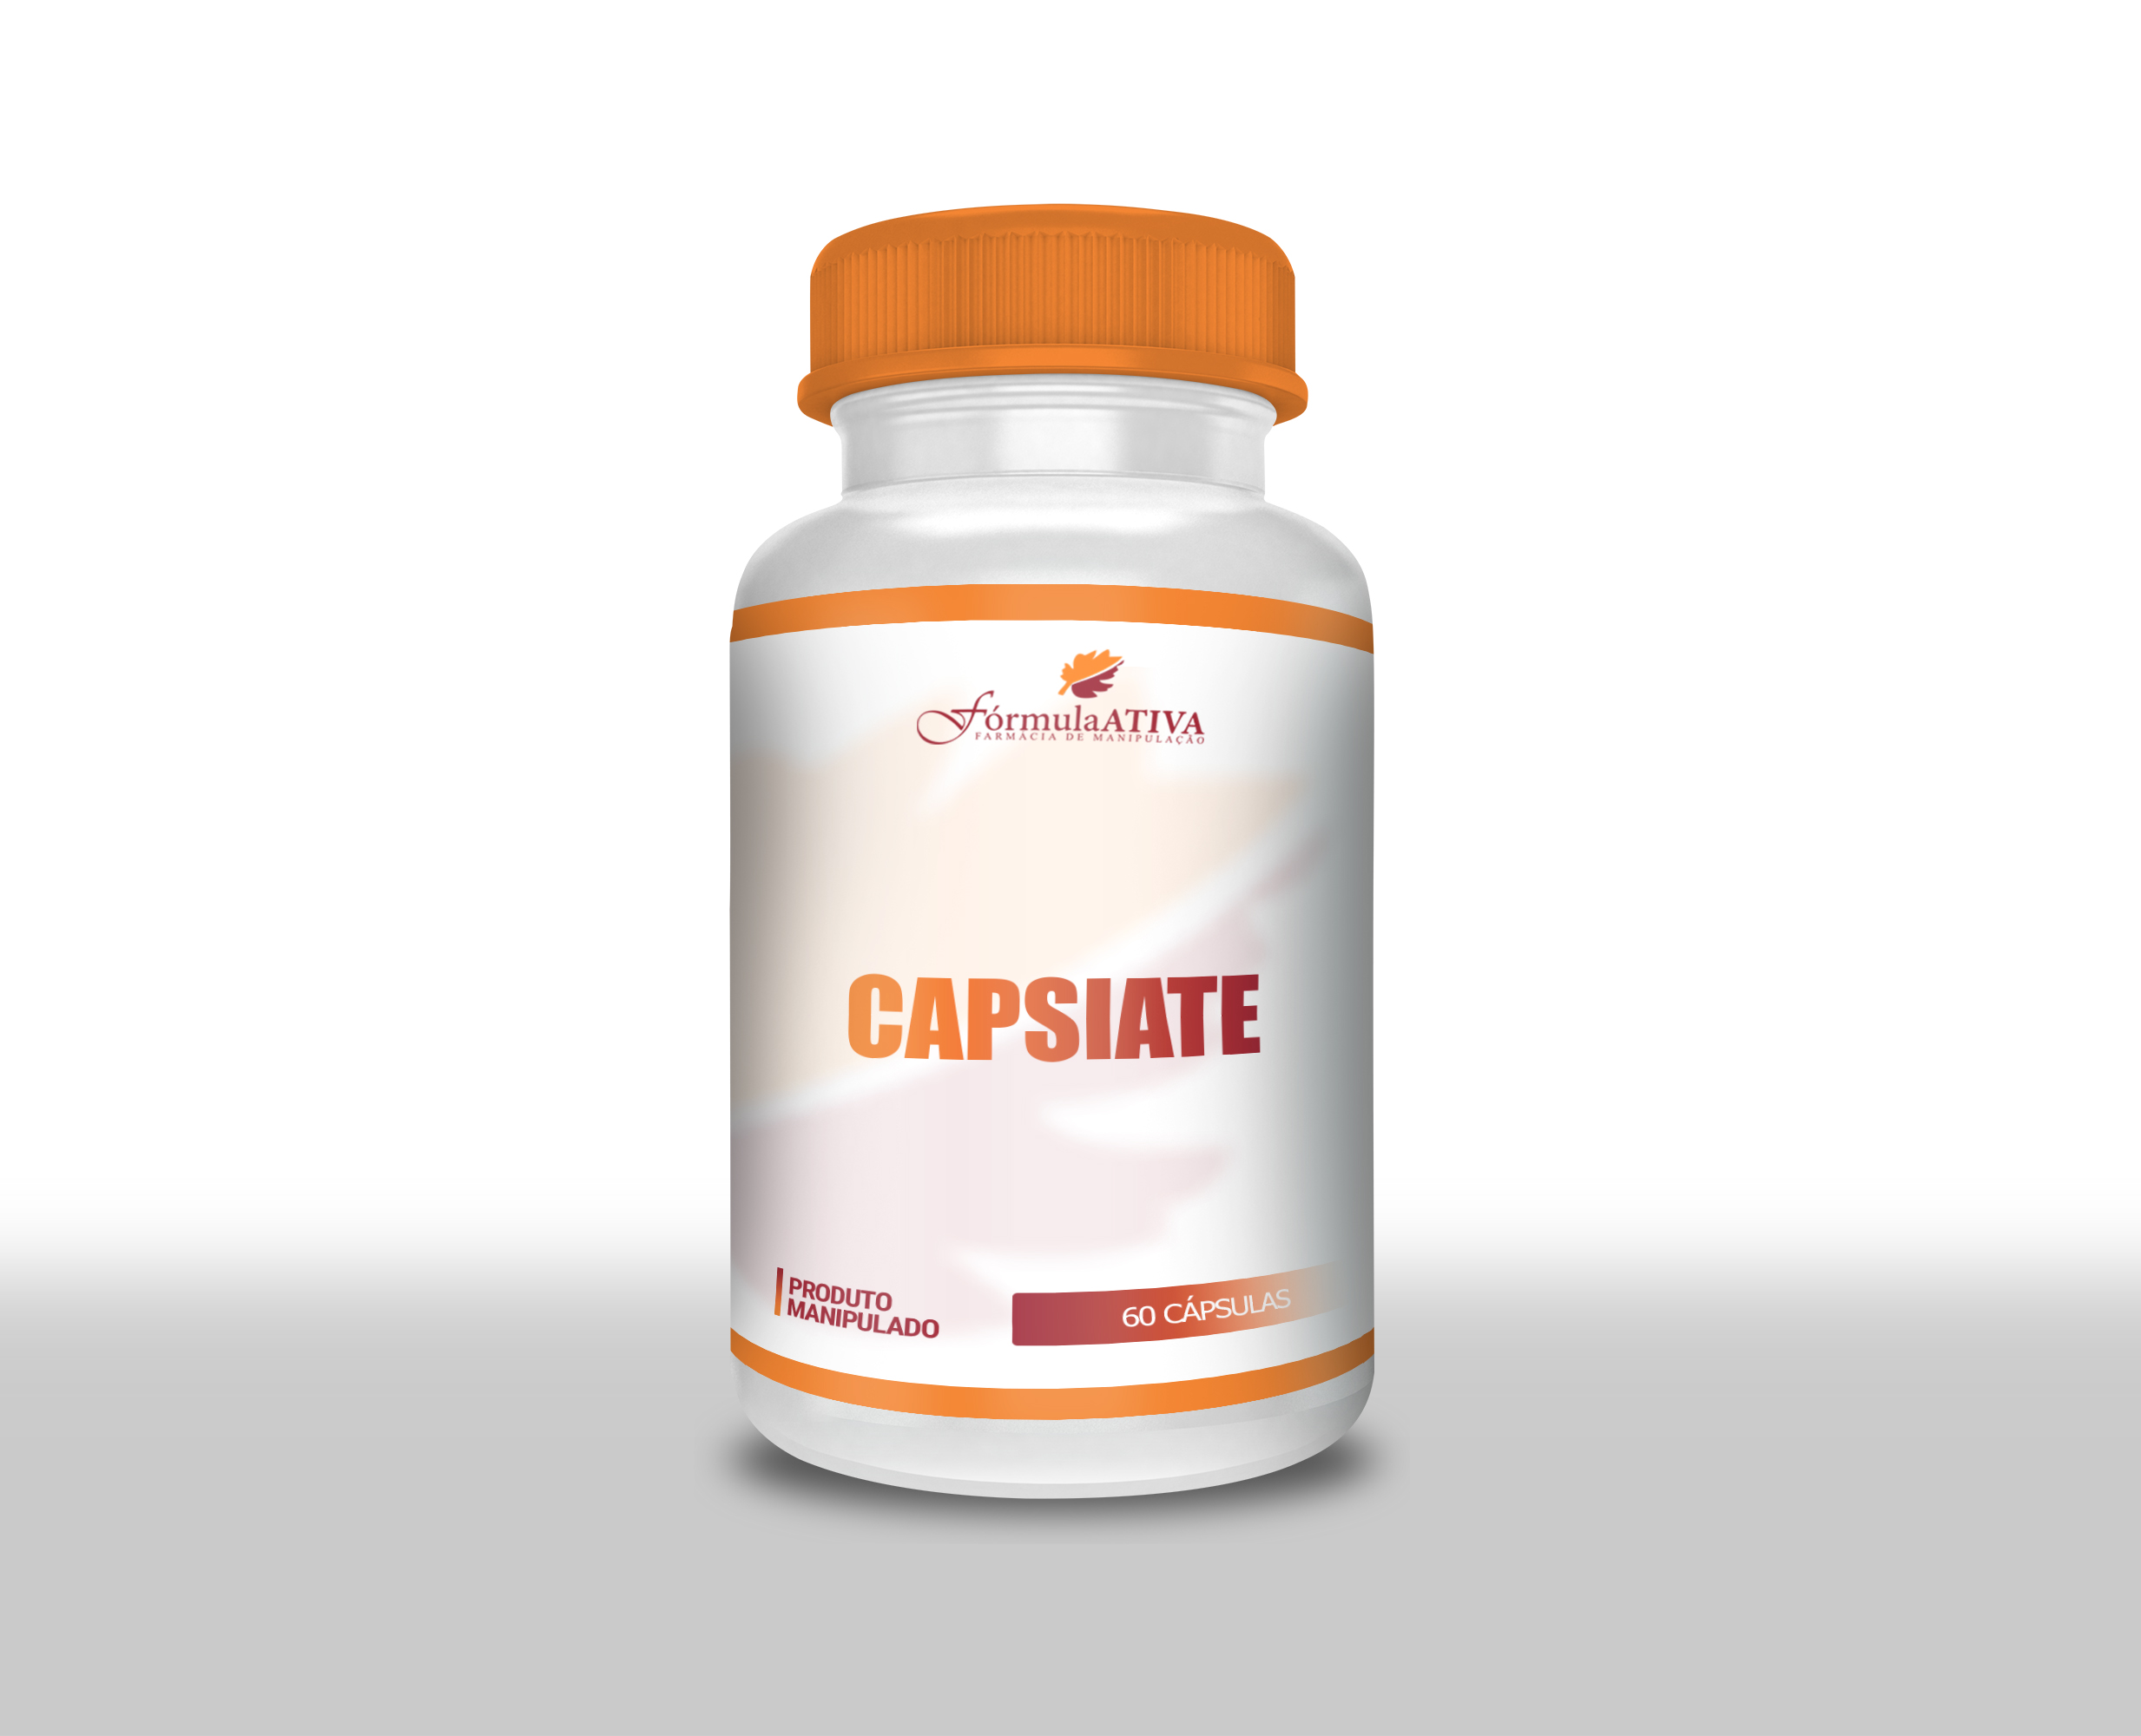 Capsiate (6mg - 60 doses)